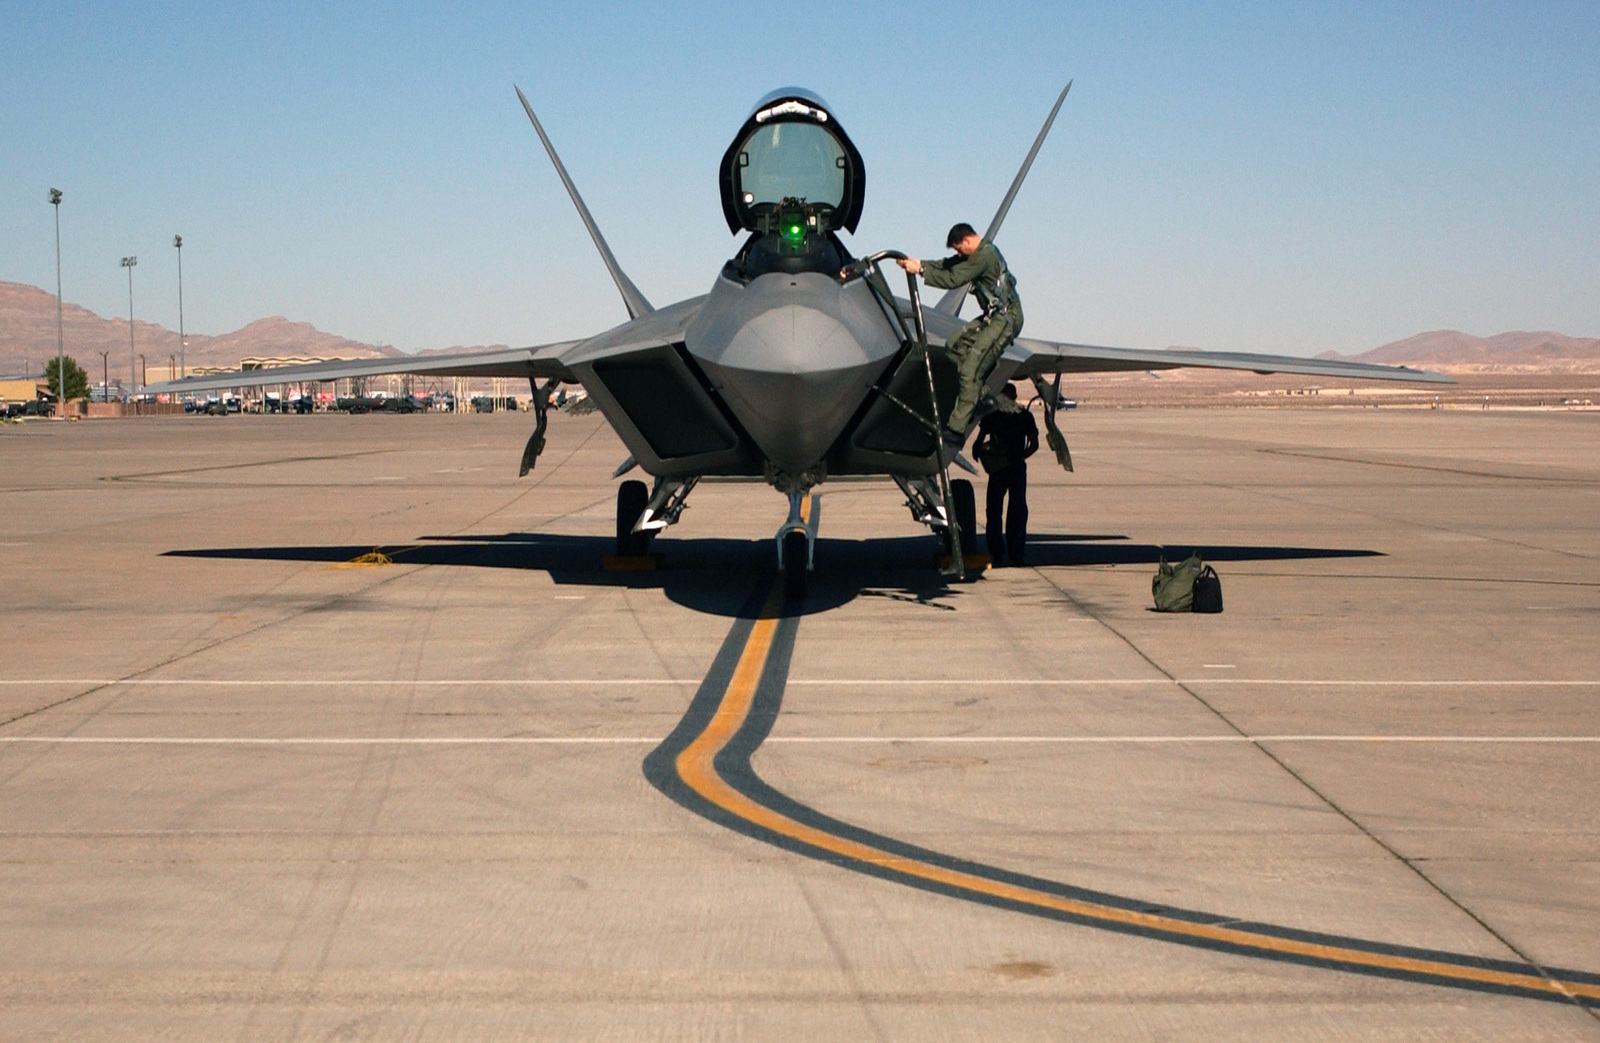 US Air Force (USAF) Major (MAJ) Mike Hernandez climbs out of his Lockheed Martin built F/A-22 Raptor fighter after flying a training mission at Nellis Air Force Base (AFB), Nevada (NV)